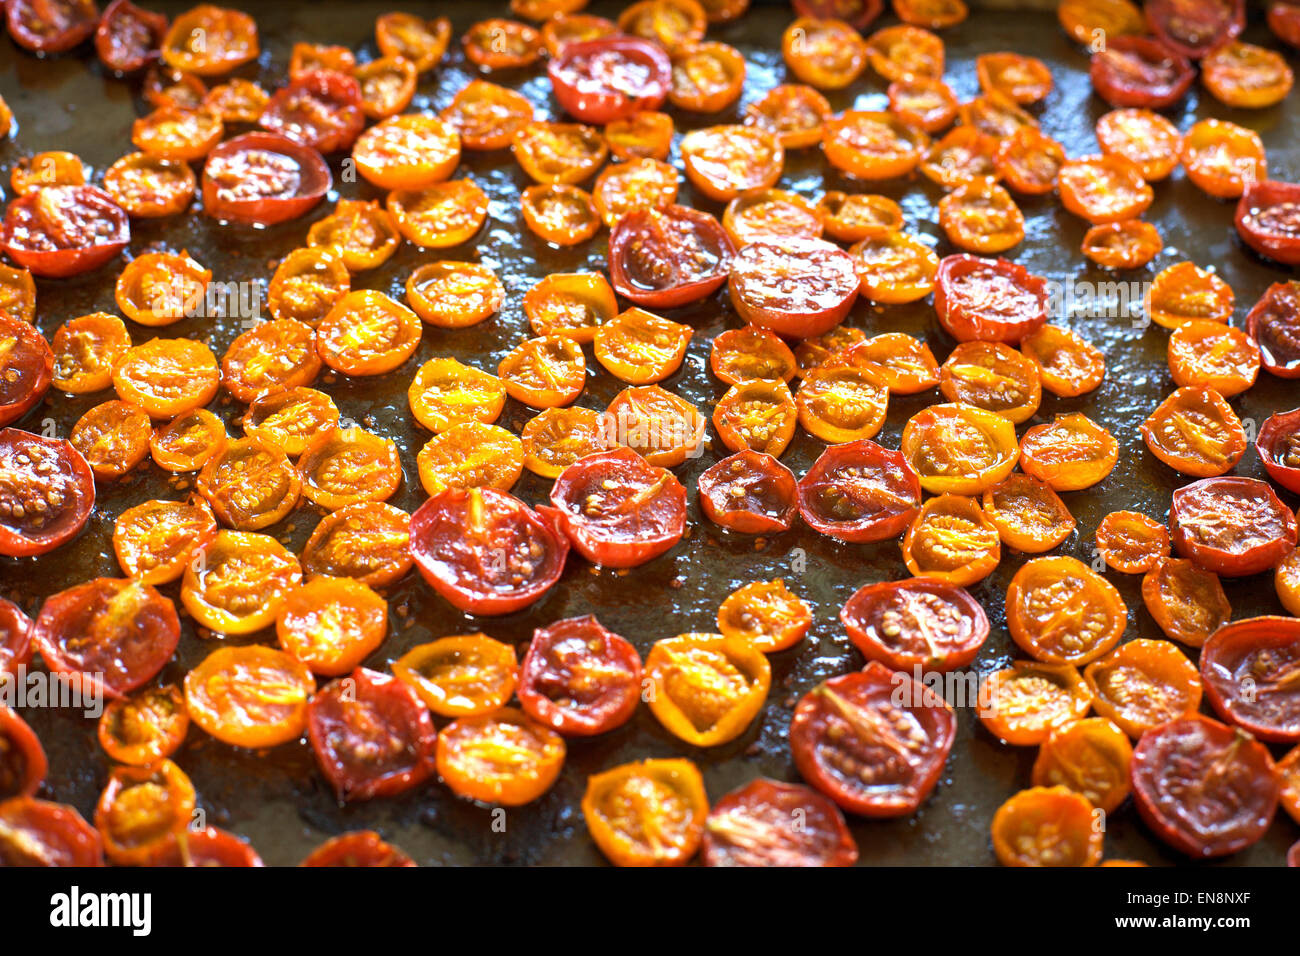 Roasted red and yellow cherry tomatoes on a sheet tray. - Stock Image